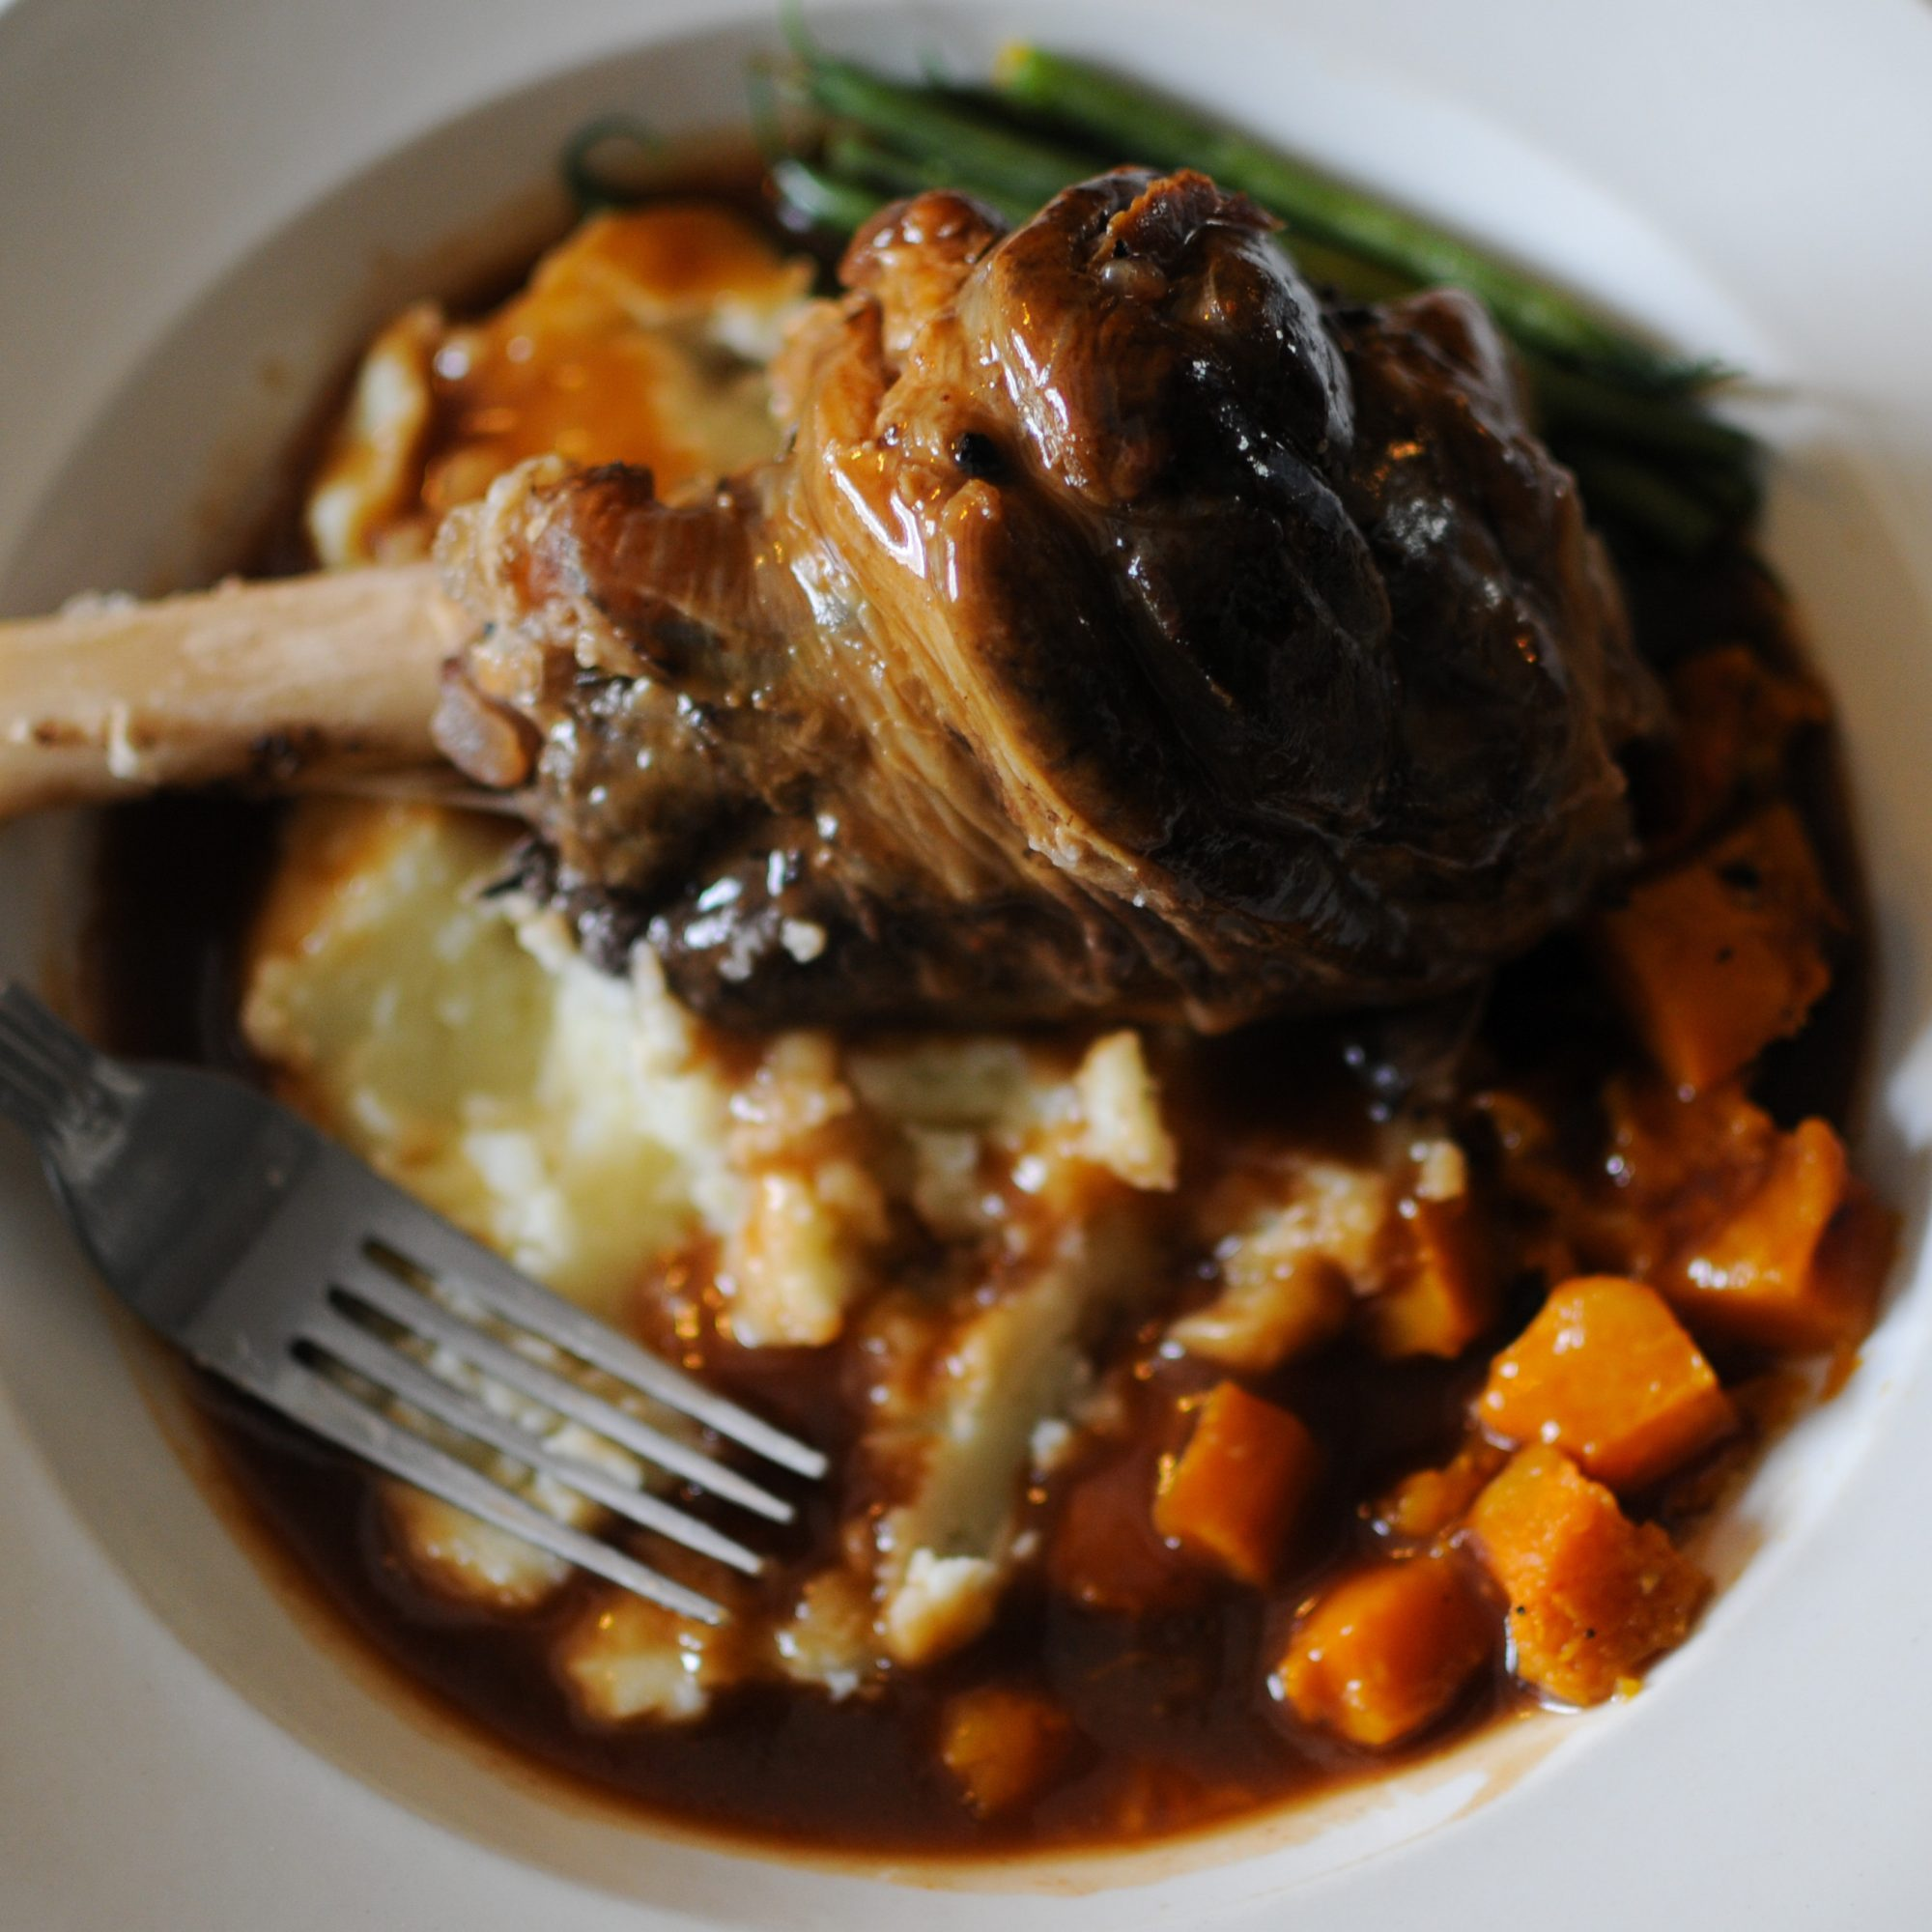 Lamb shank with mash potatoes and carrots